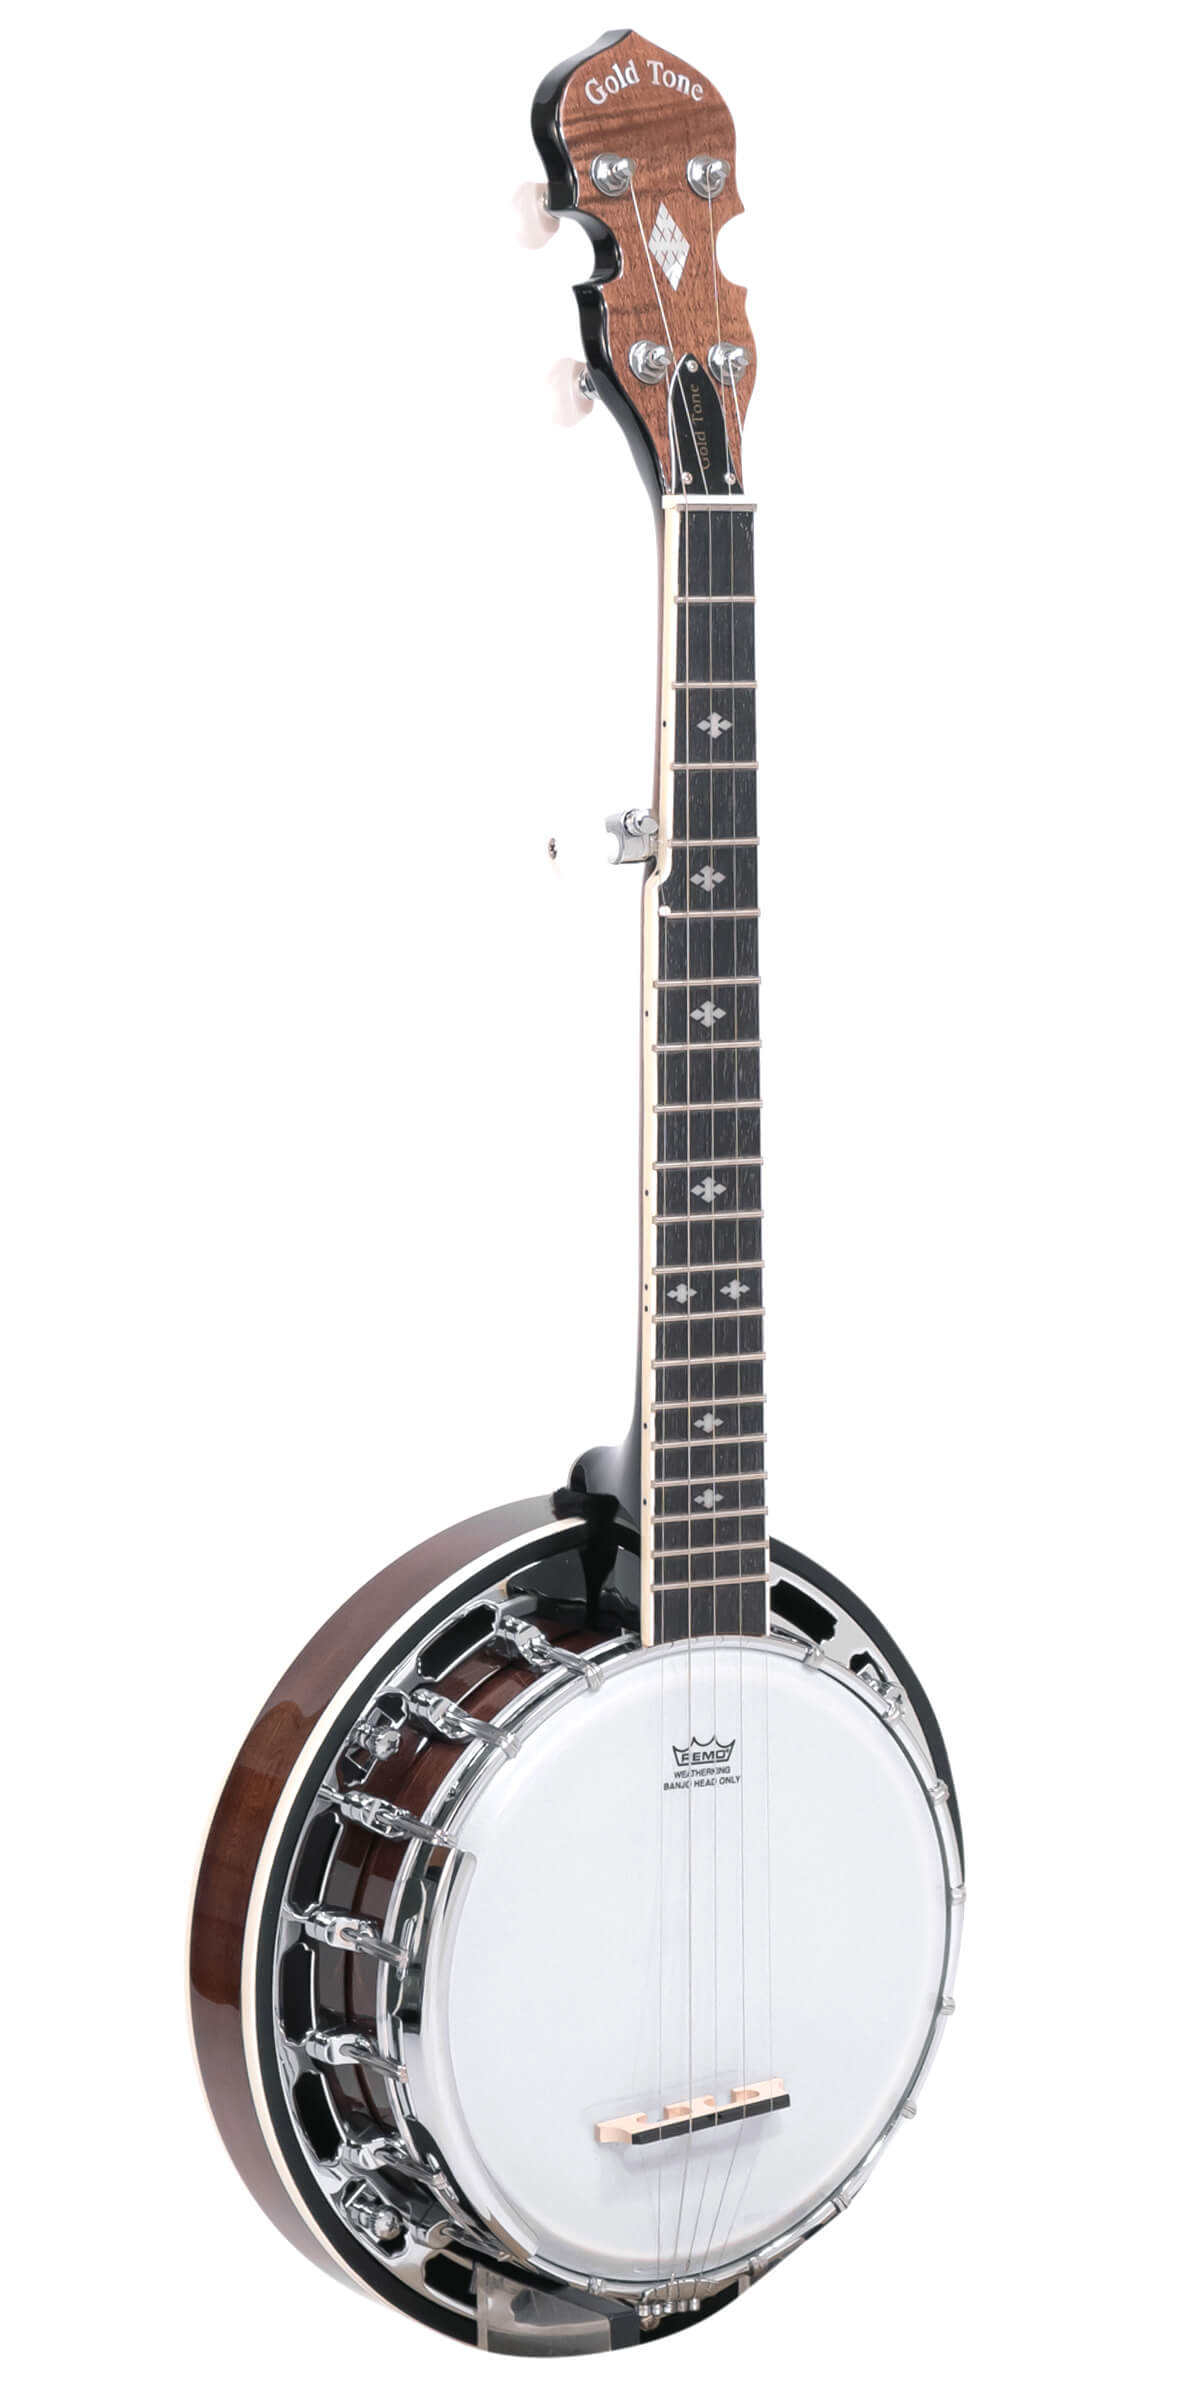 BG-Mini: Bluegrass Mini Banjo